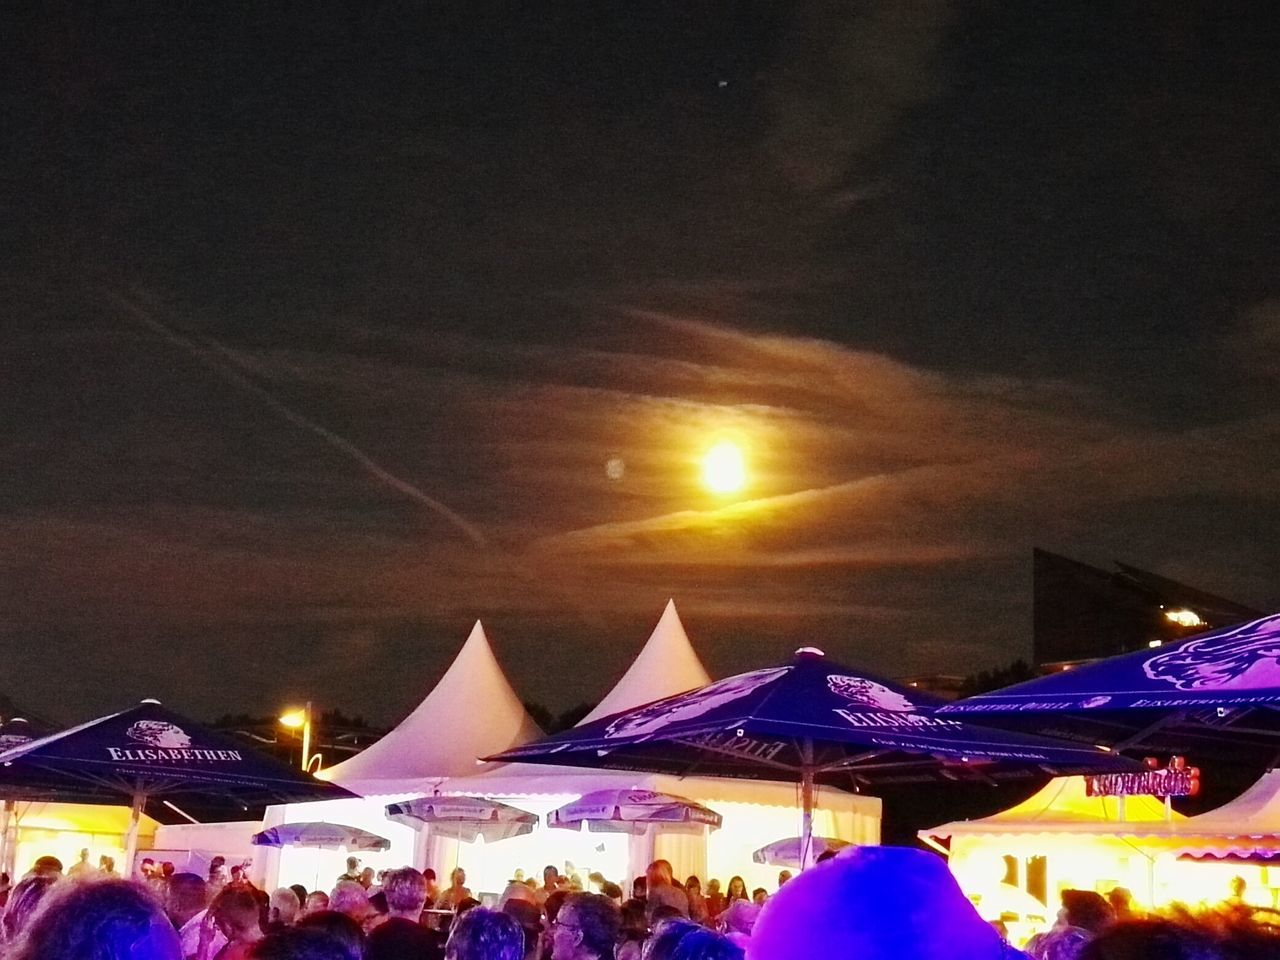 Festival Season HR 3 Sinfonieorchester Open Air Rising Moon Weseler Werft People And Places